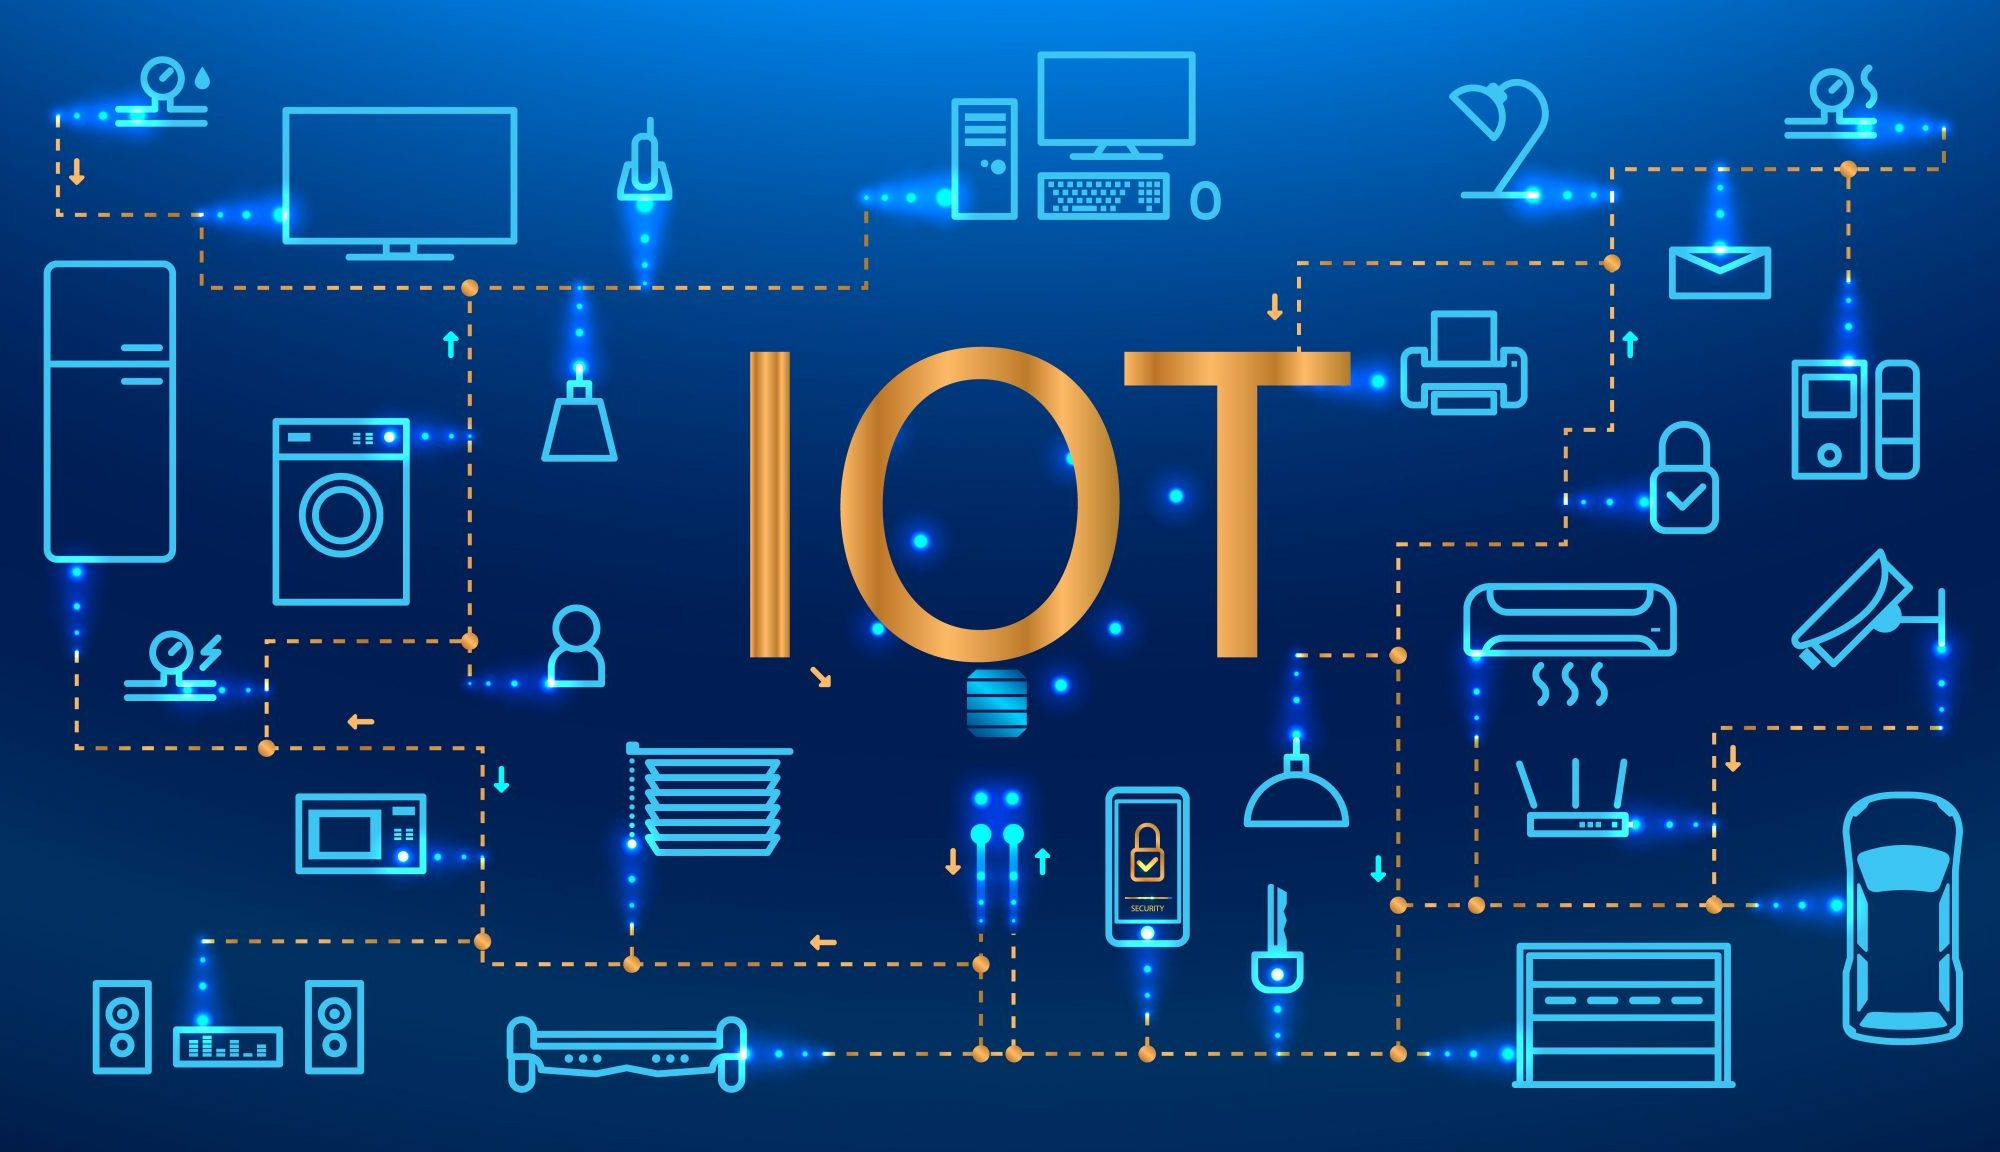 iot app development company , iot application development company , iot app development , iot app development services , iot app development services , iot app devleopment , iot app service provider